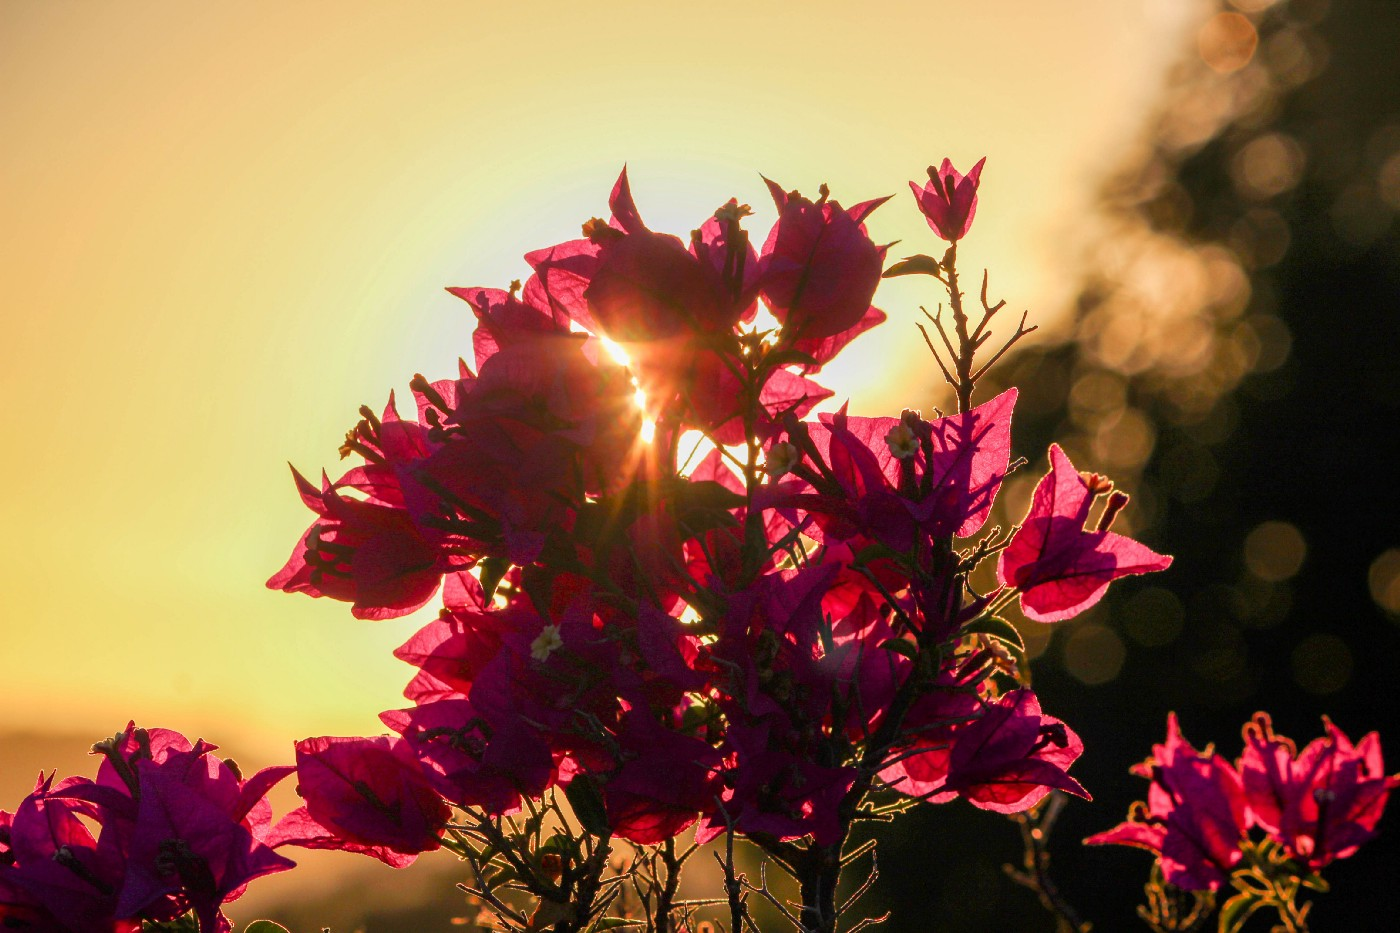 Flowers open up to gather in the morning sun.